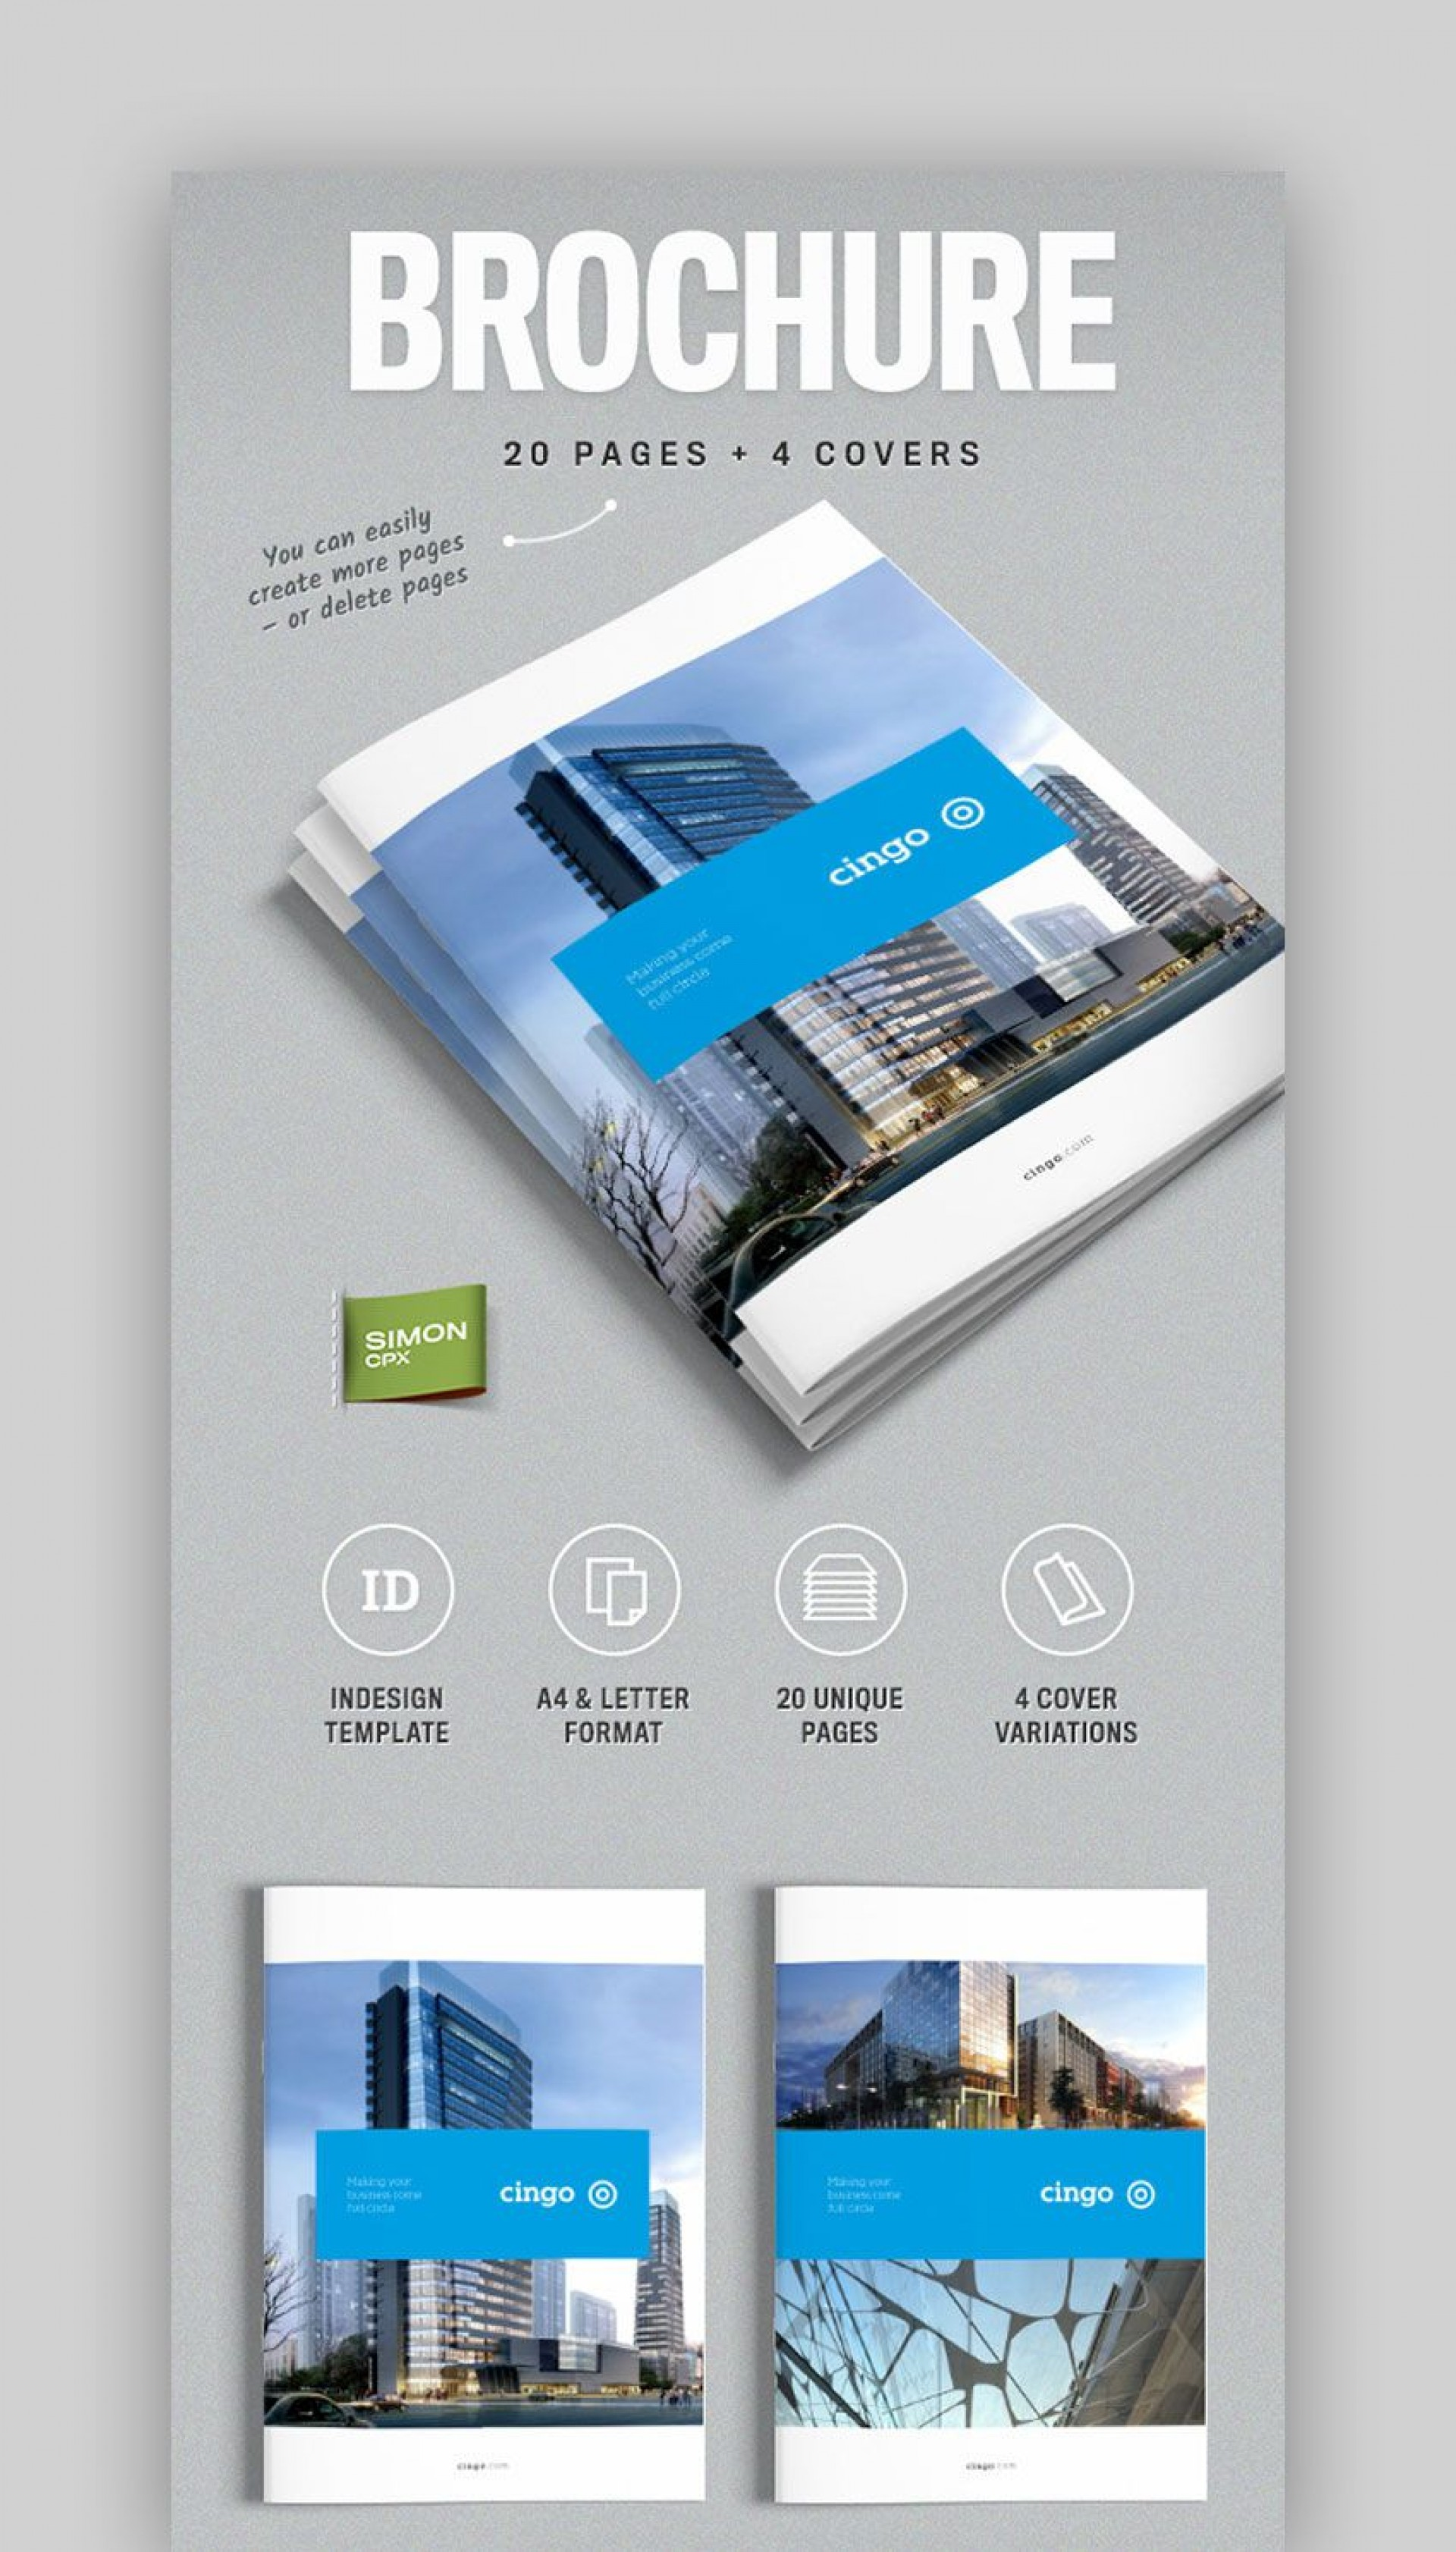 004 Unbelievable Indesign A4 Brochure Template Free Download High Resolution 1920